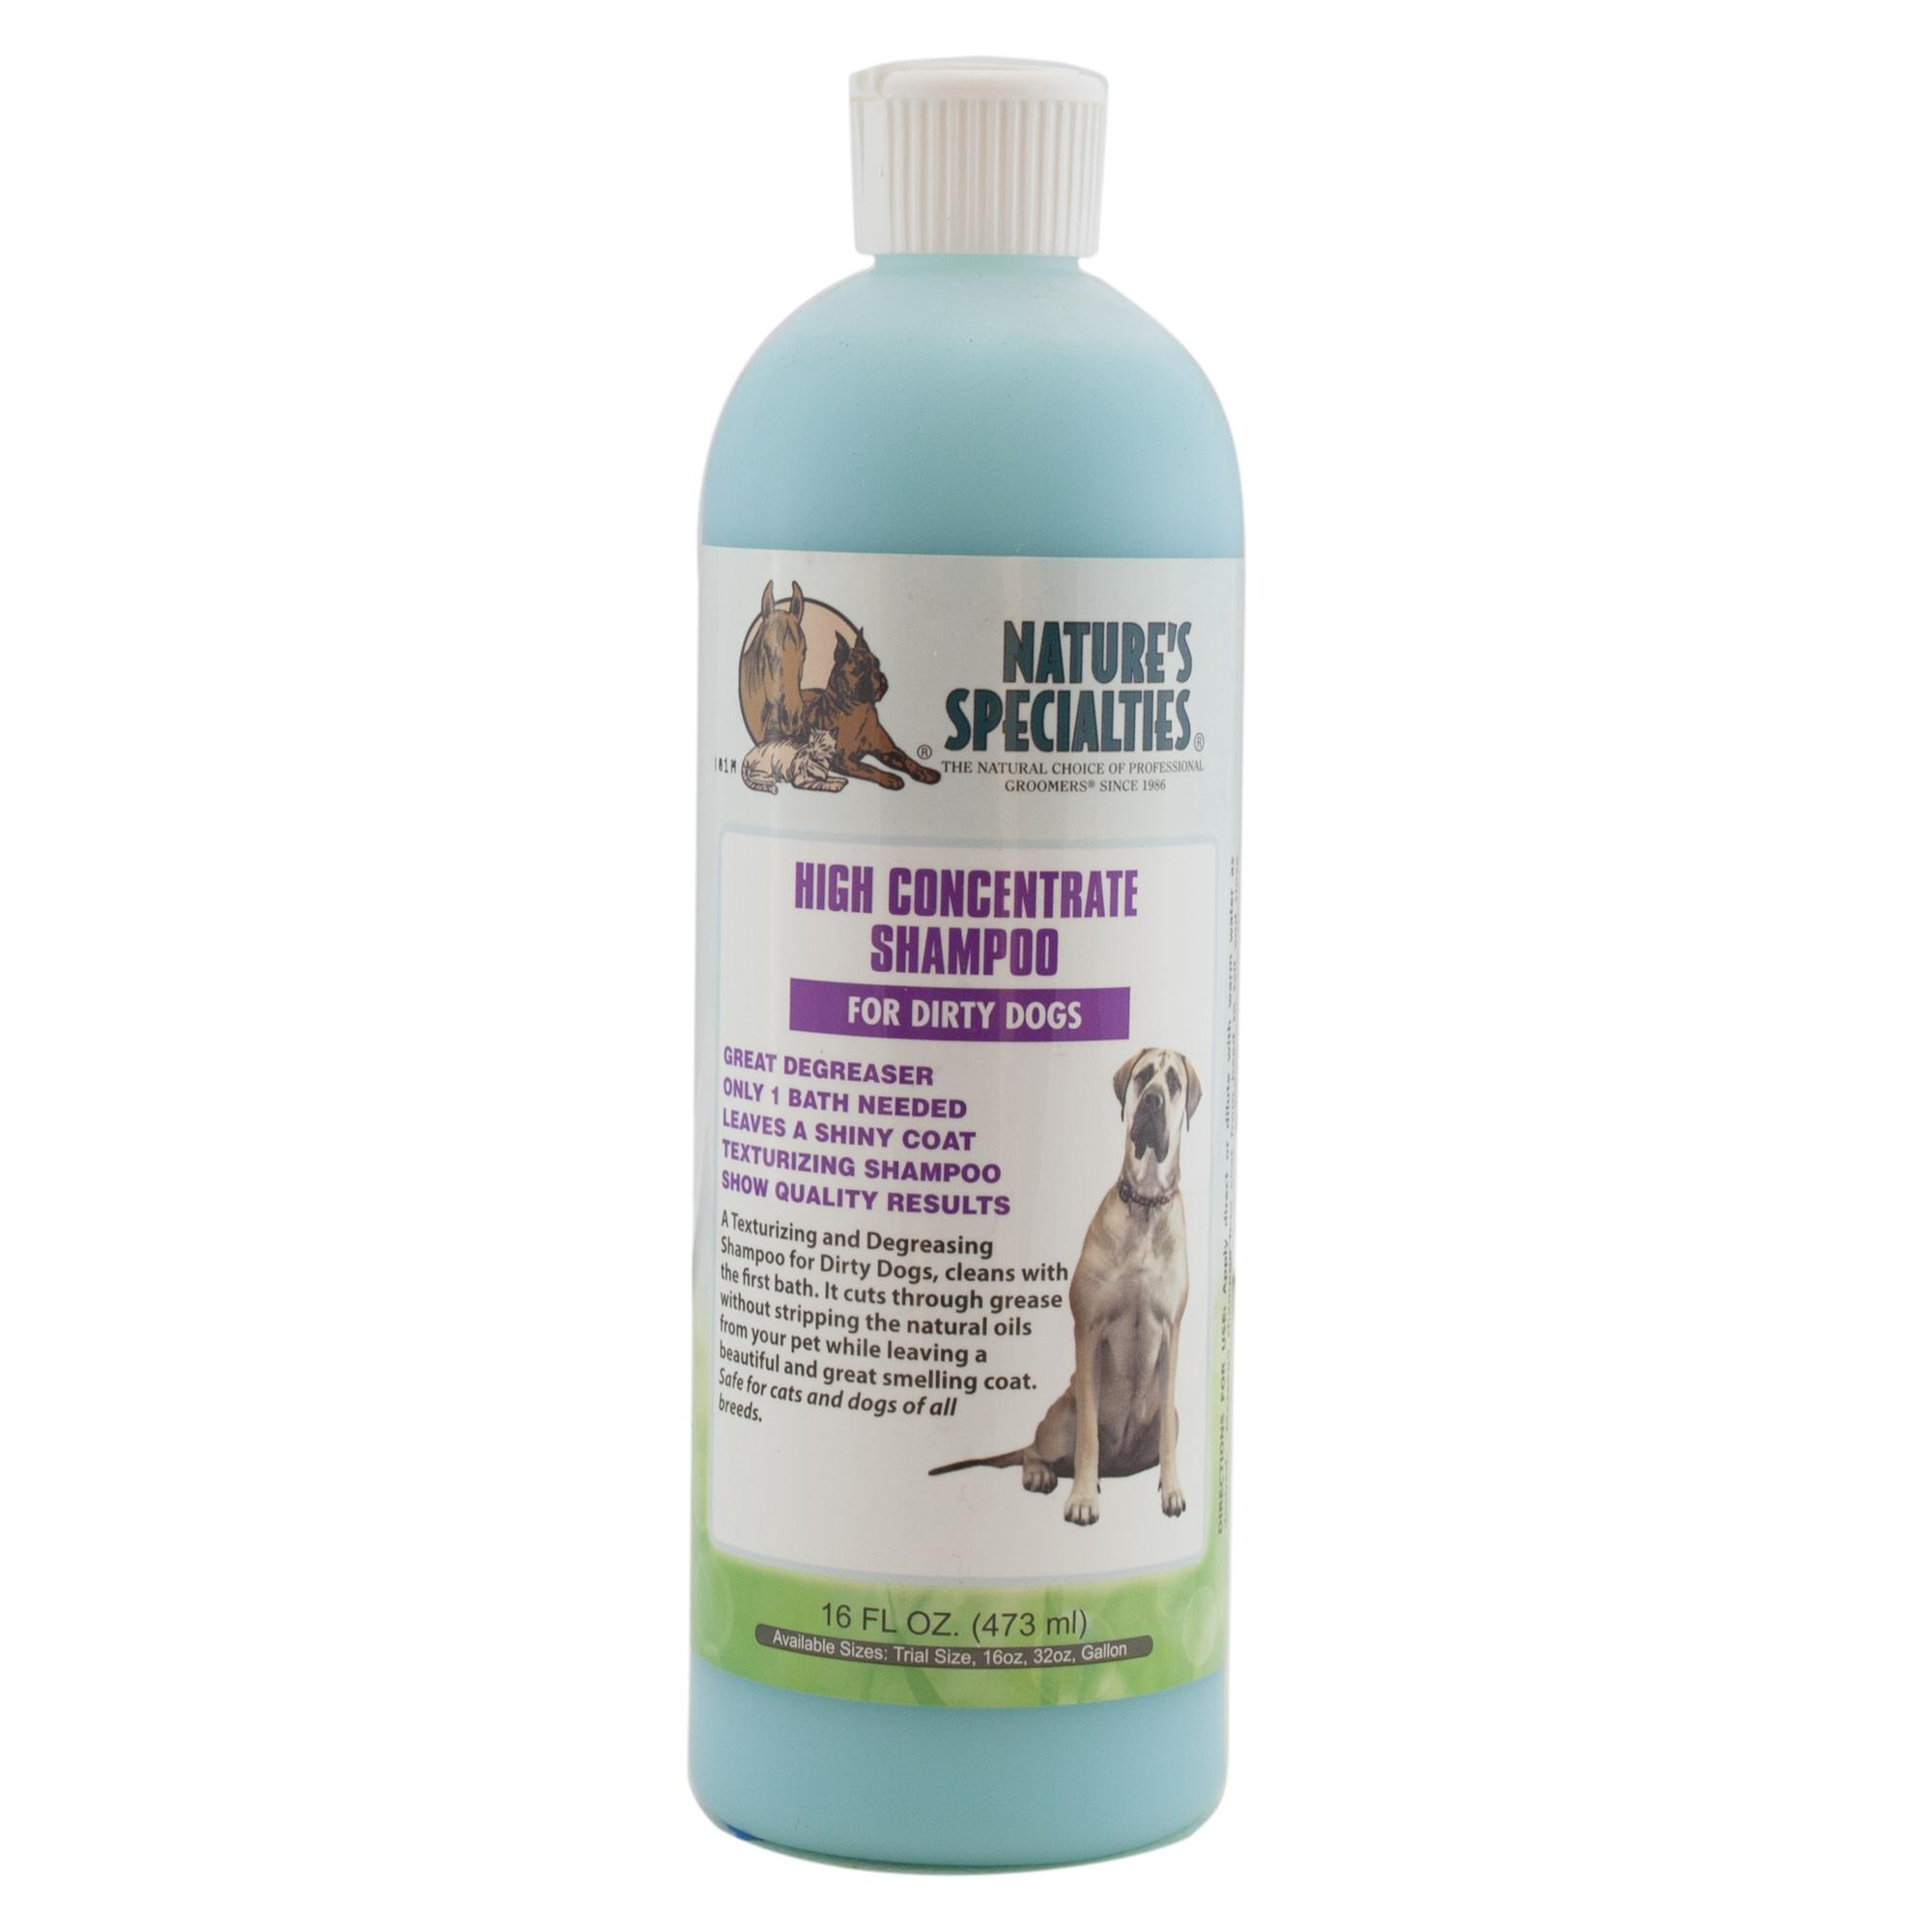 Nature's Specialties High Concentrate Shampoo for Dirty Dogs and Cats, 16-oz bottle